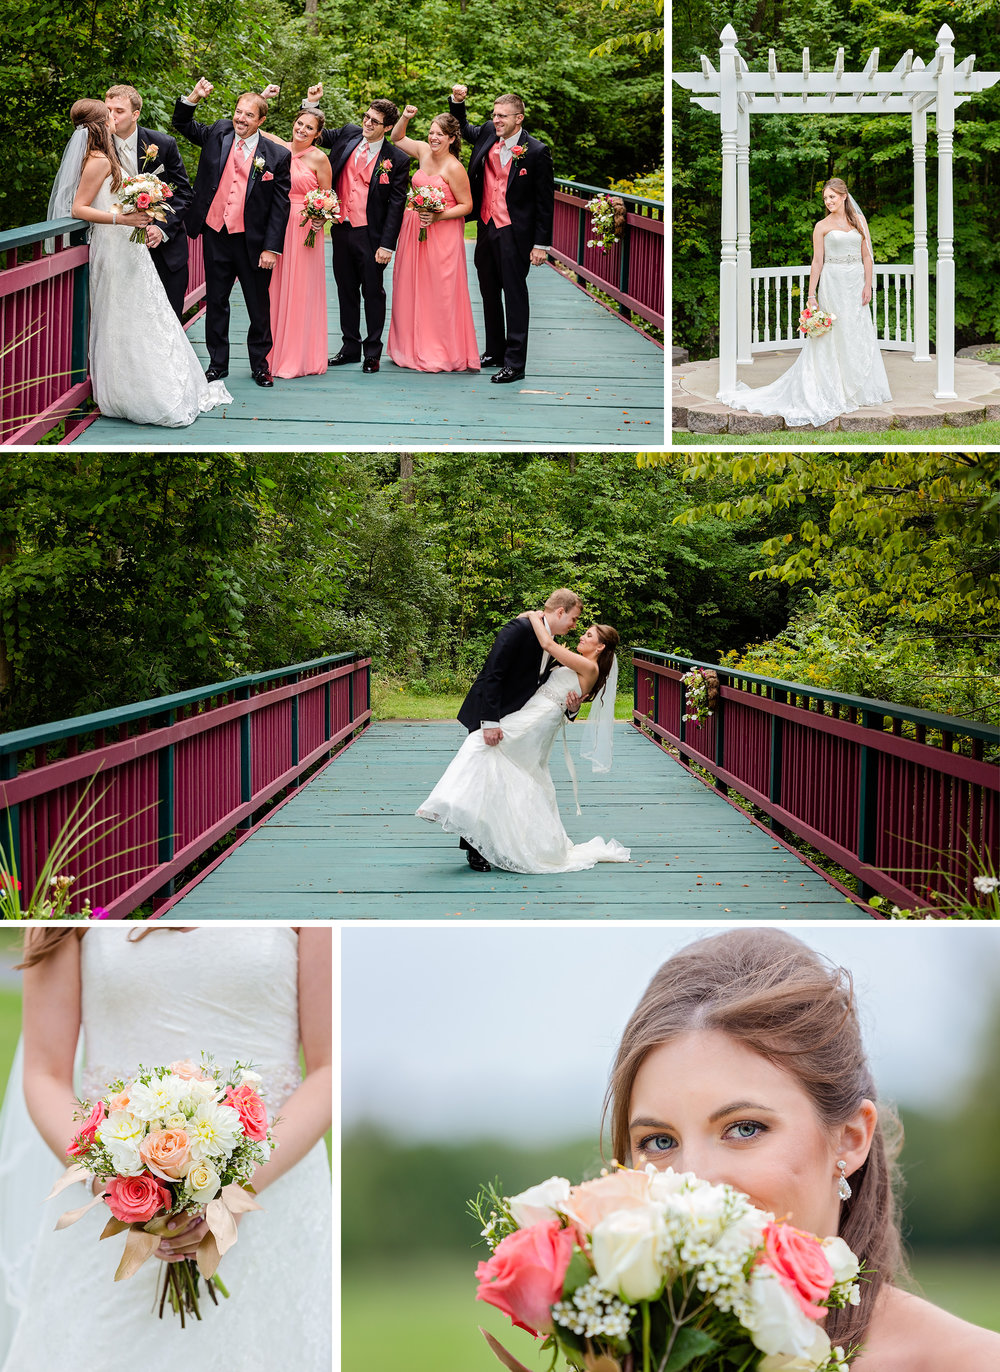 Hart_wedding_blogCollage-6.jpg